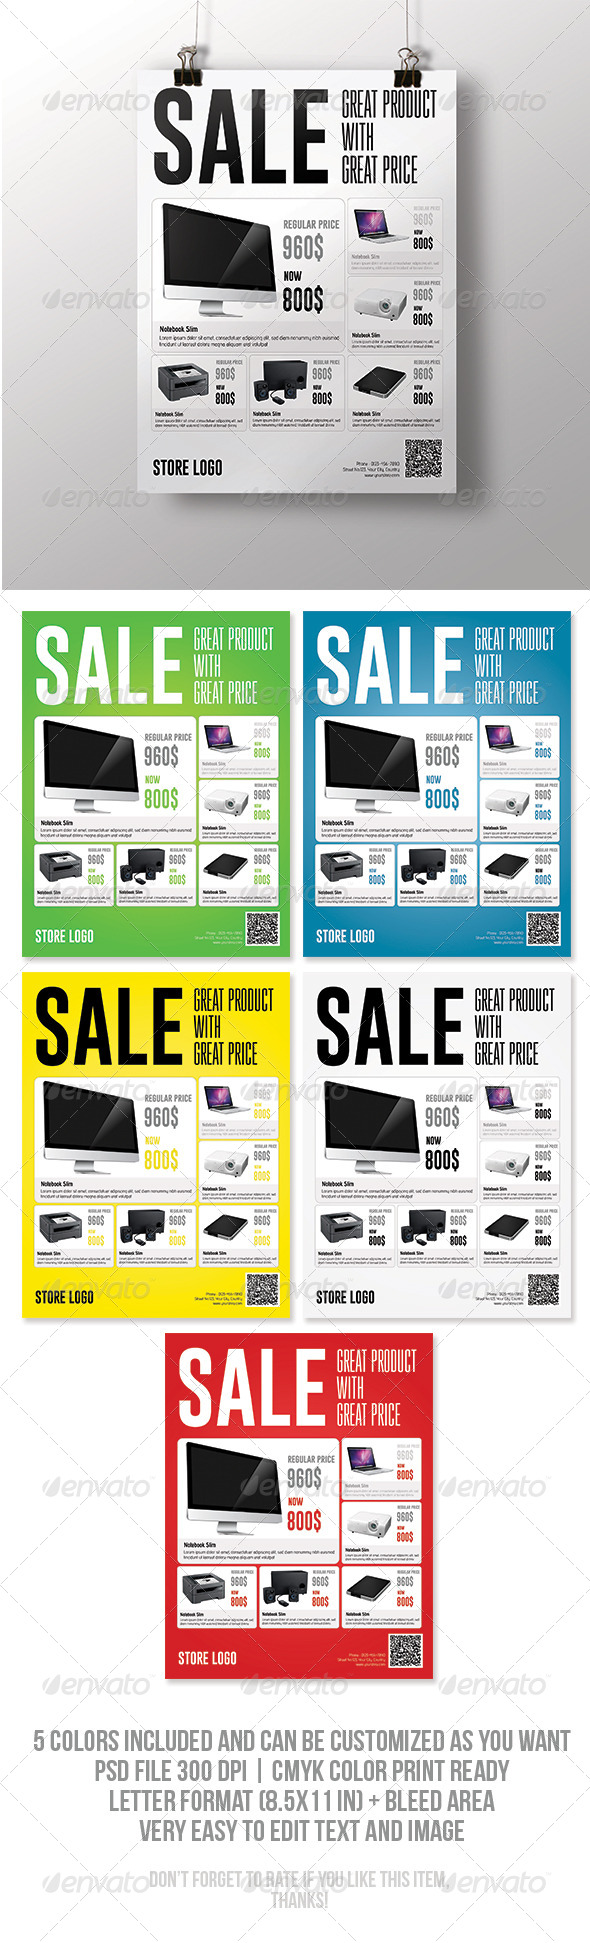 GraphicRiver Sale Flyer 7318250